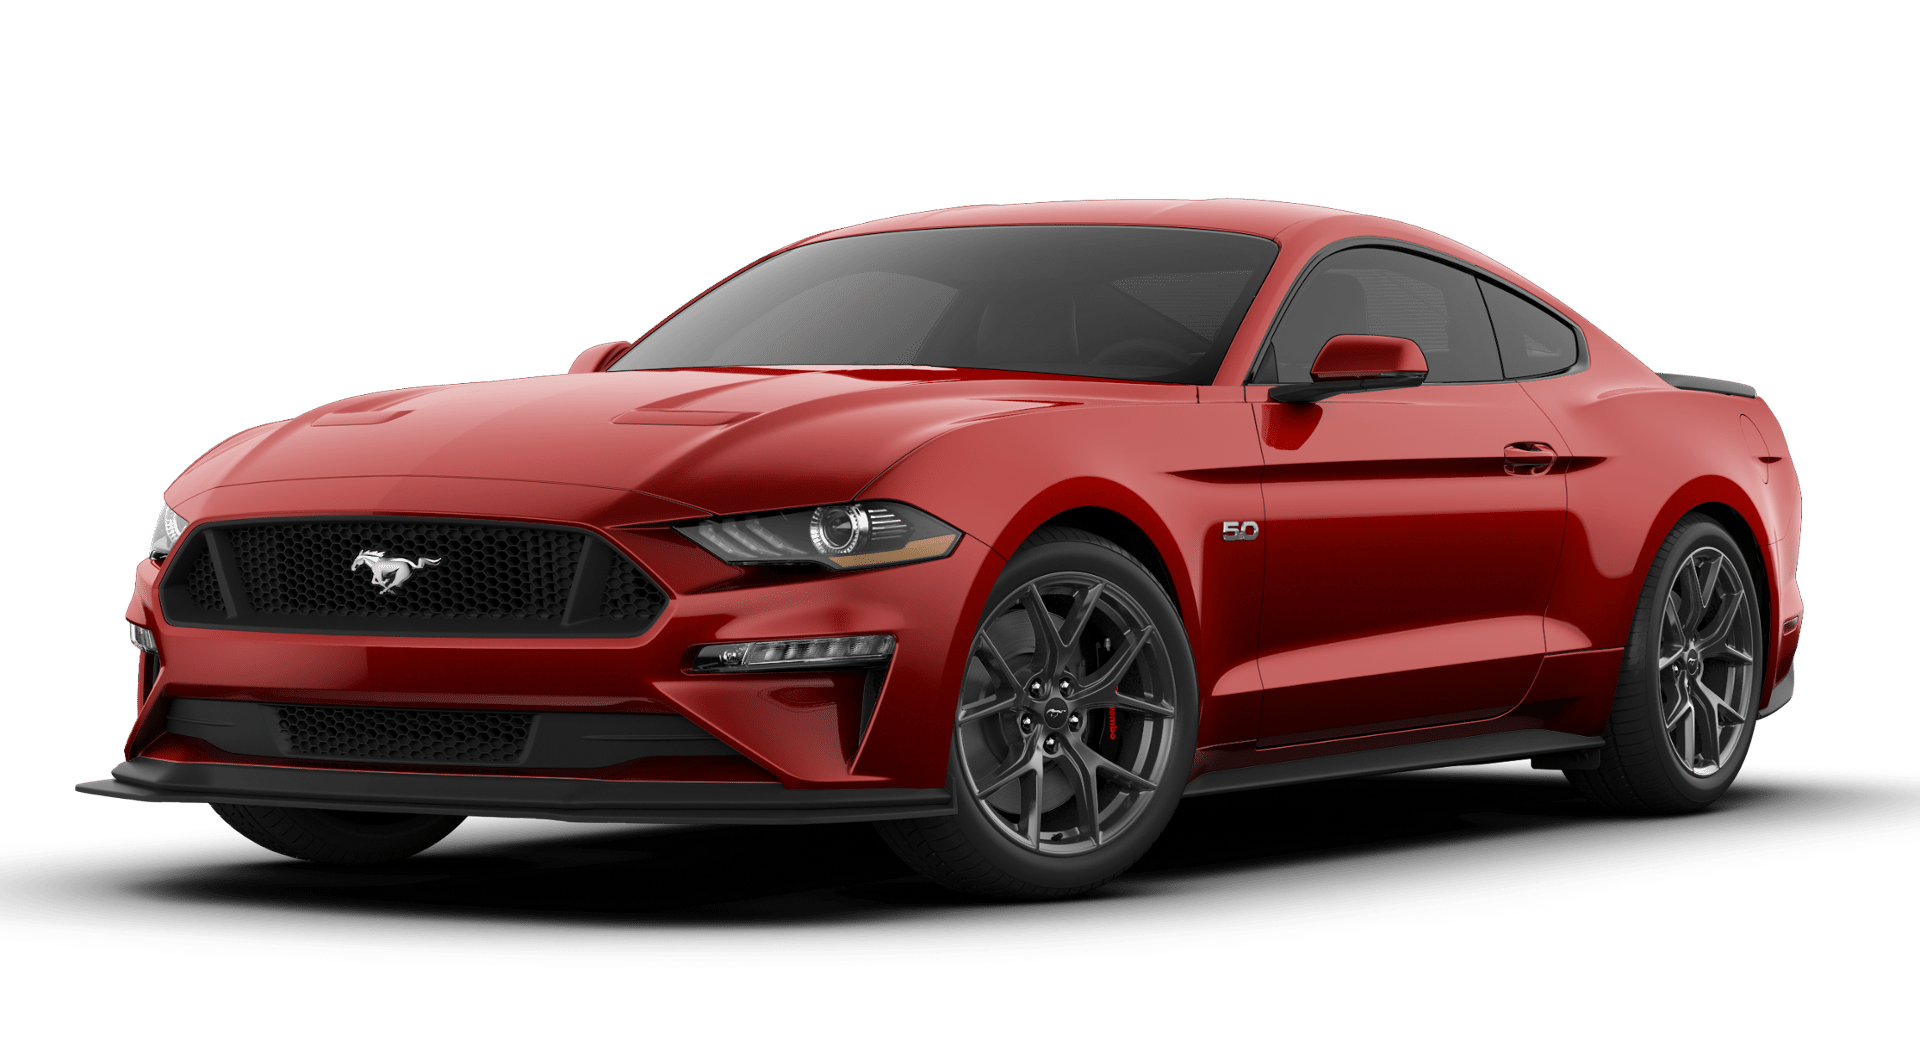 Exterior View Of 2019 Mustang Ford Mustang Hybrid Car Car